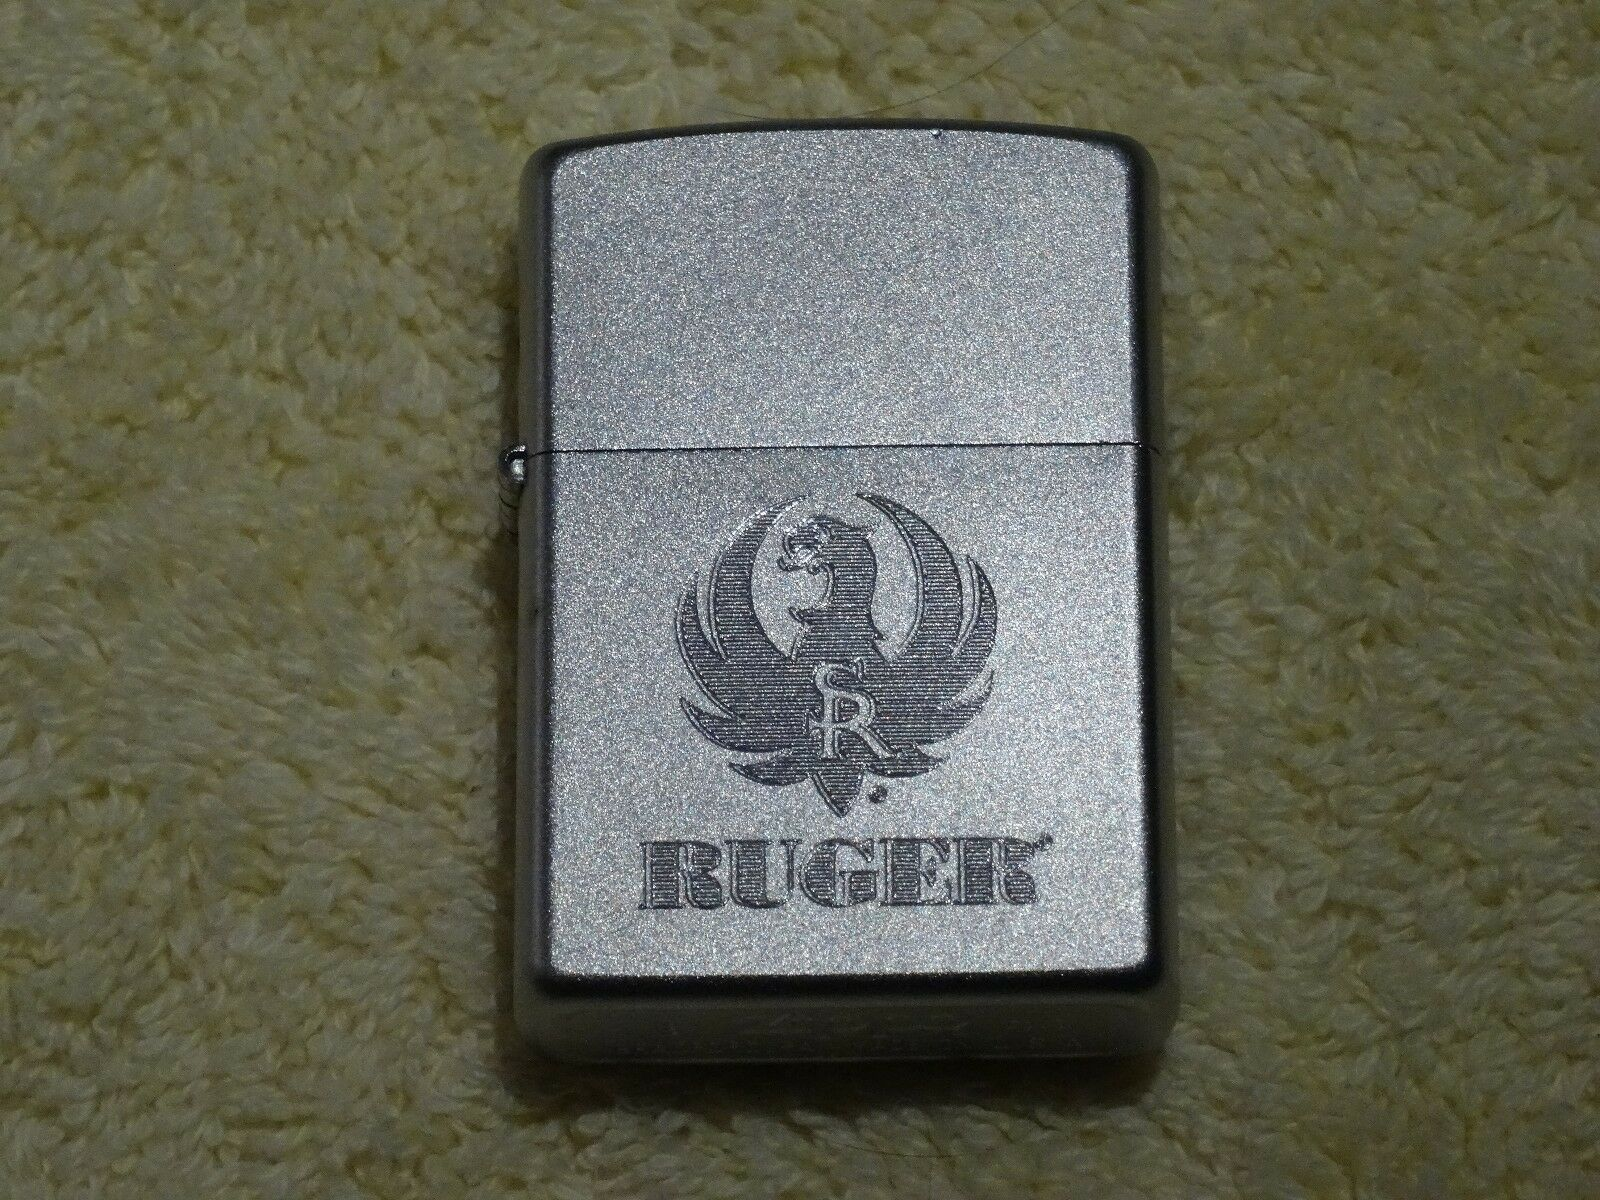 RUGER CHROME COMPUTER ETCHED ZIPPO LIGHTER - 2003 - MANUFACTURER SEALED, RARE